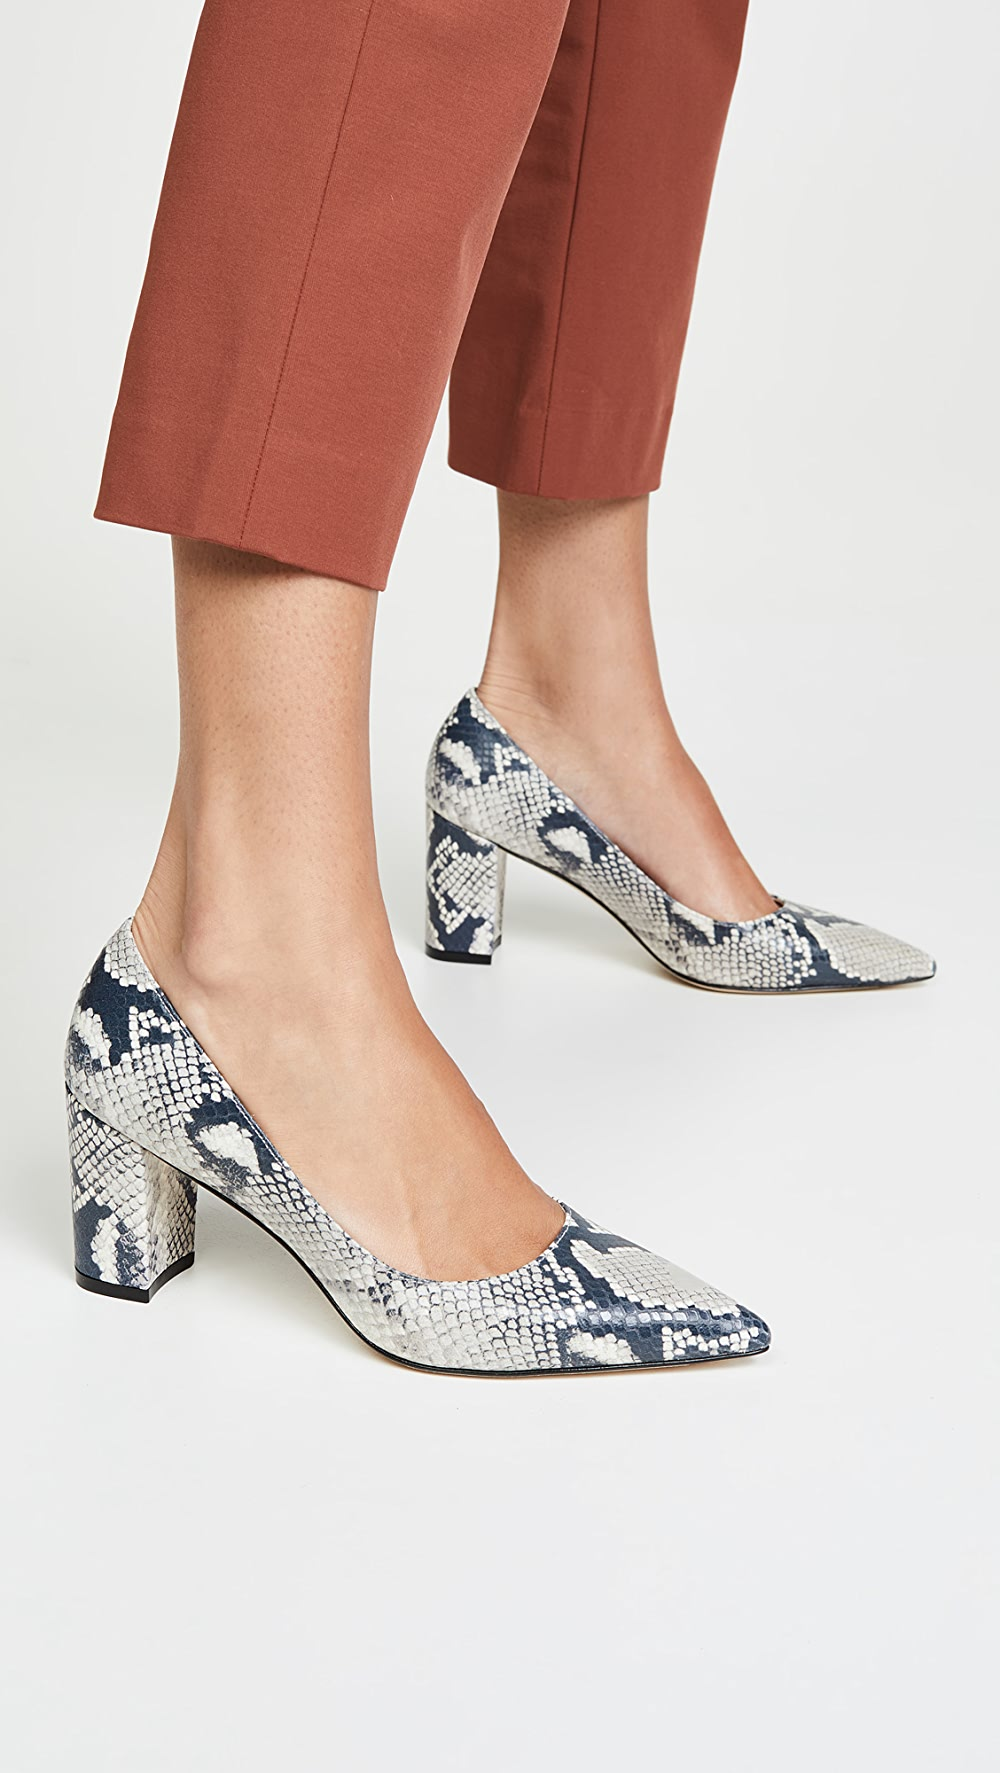 2019 Fashion Stuart Weitzman - Laney 75 Pumps Catalogues Will Be Sent Upon Request